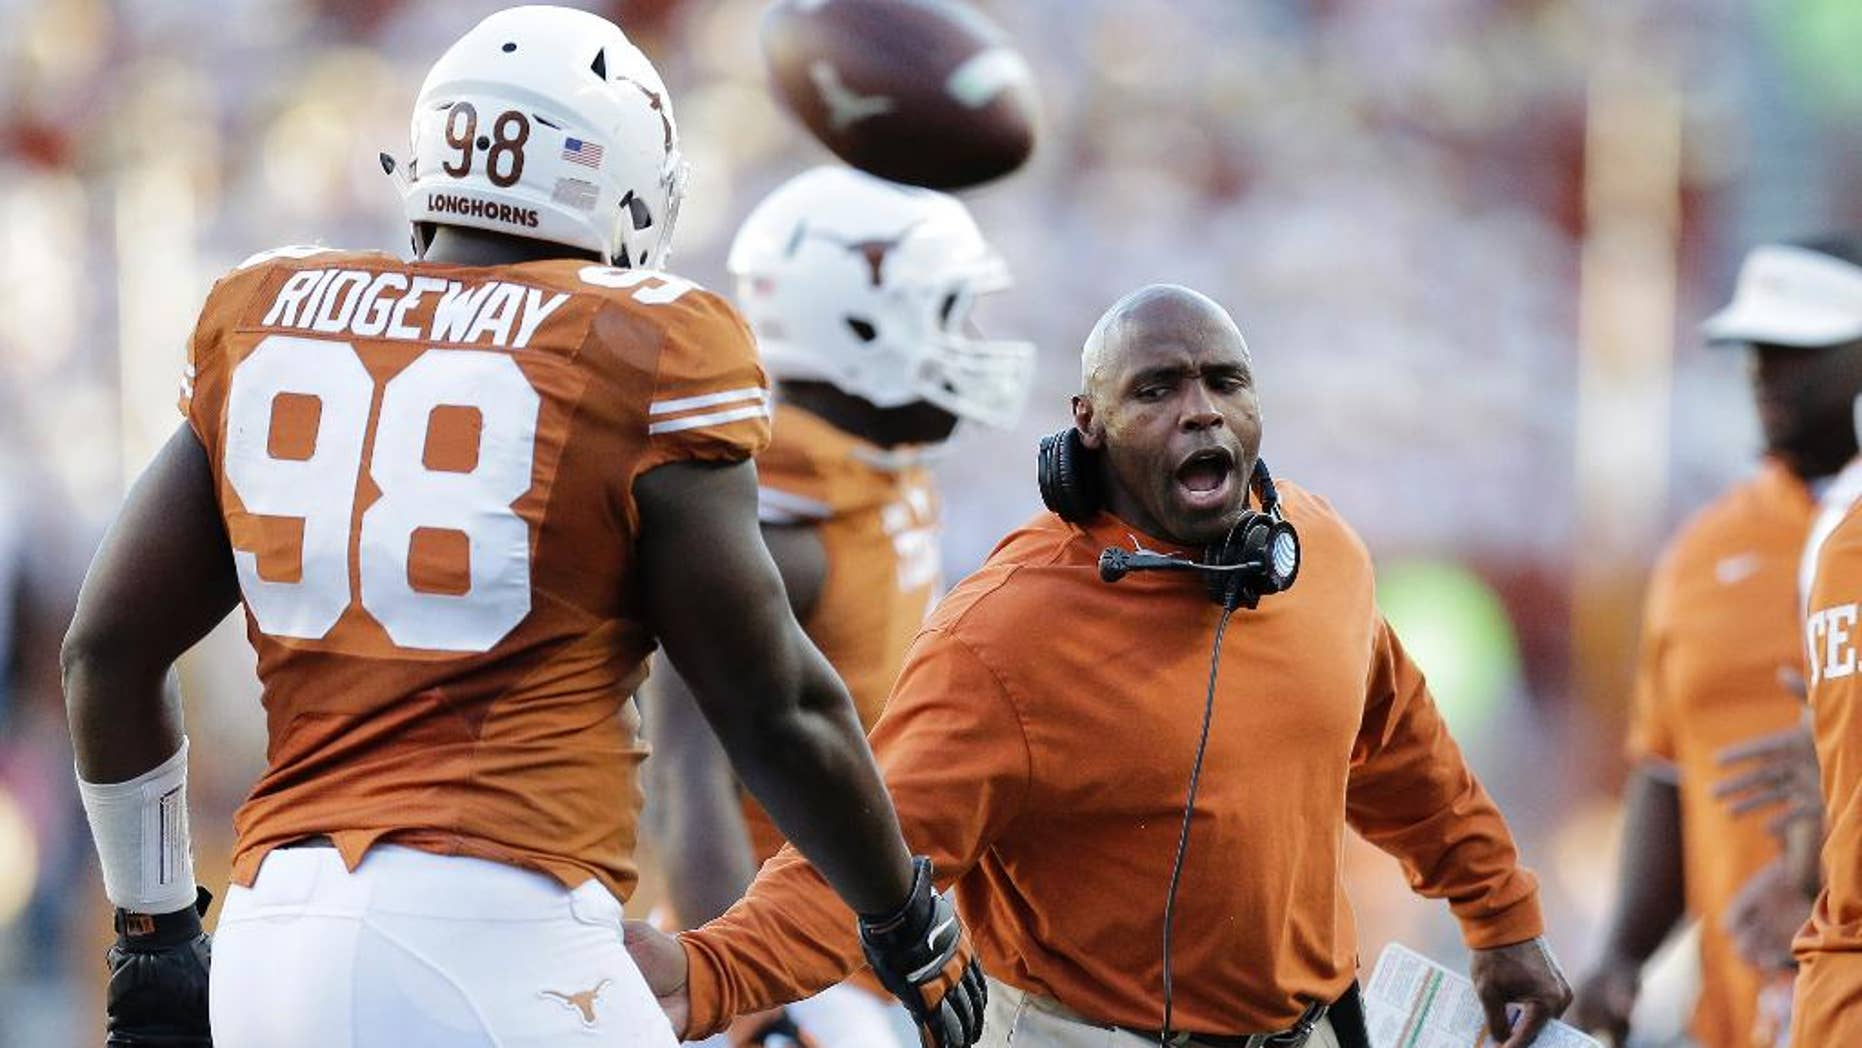 Texas Longhorns head coach Charlie Strong, right, congratulates players as they walk off the field during the second half of an NCAA college football game against West Virginia, Saturday, Nov. 8, 2014, in Austin, Texas.  Texas won 33-16. (AP Photo/Eric Gay)